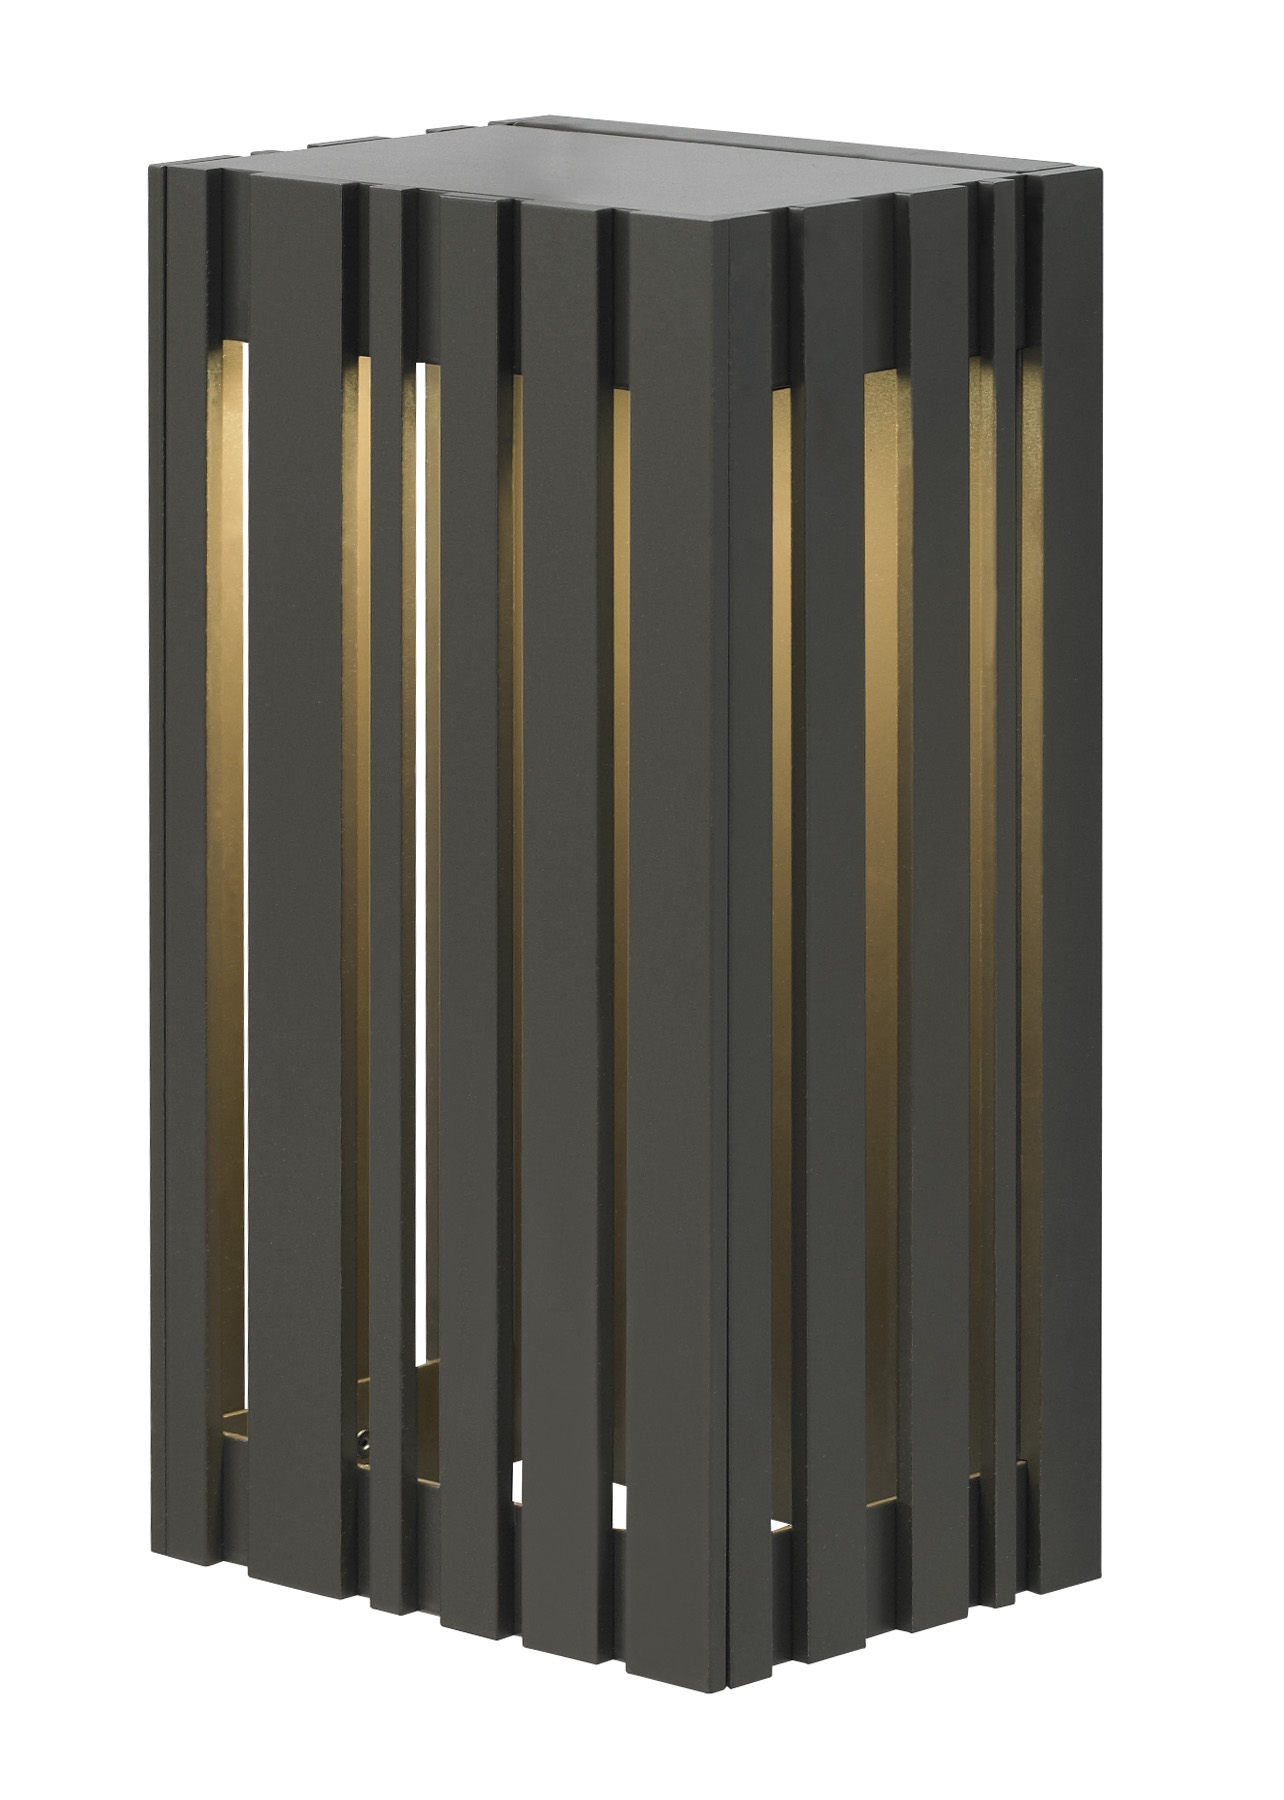 Led outdoor wall sconce by lbl lighting lw642bzledw uptown led outdoor wall sconce download image amipublicfo Images